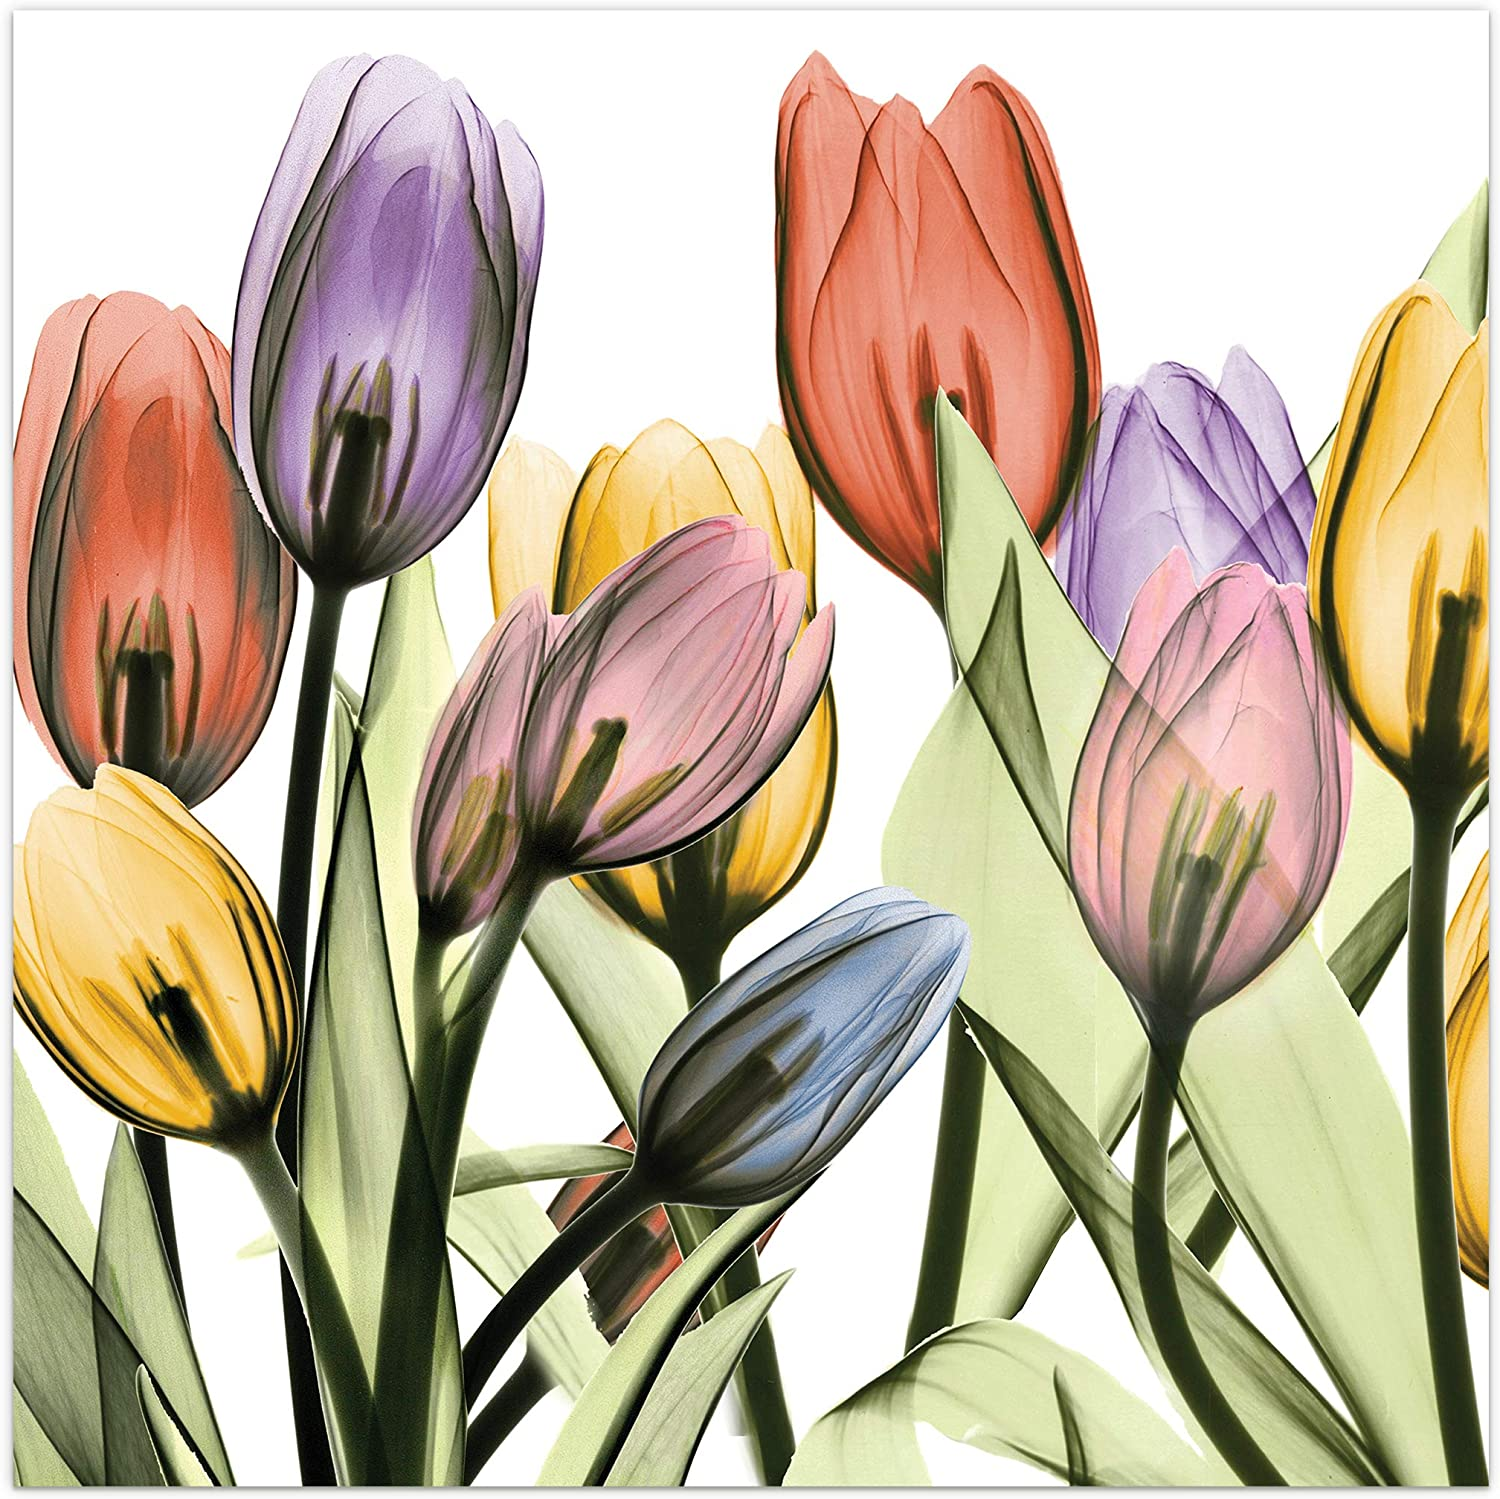 """Empire Art Direct Tulip Scape X-Ray I Flower Wall Art on Frameless Free Floating Tempered Glass Panel Ready to Hang, Living Room, Bedroom & Office, 24"""" x 24"""" x 0.2"""""""